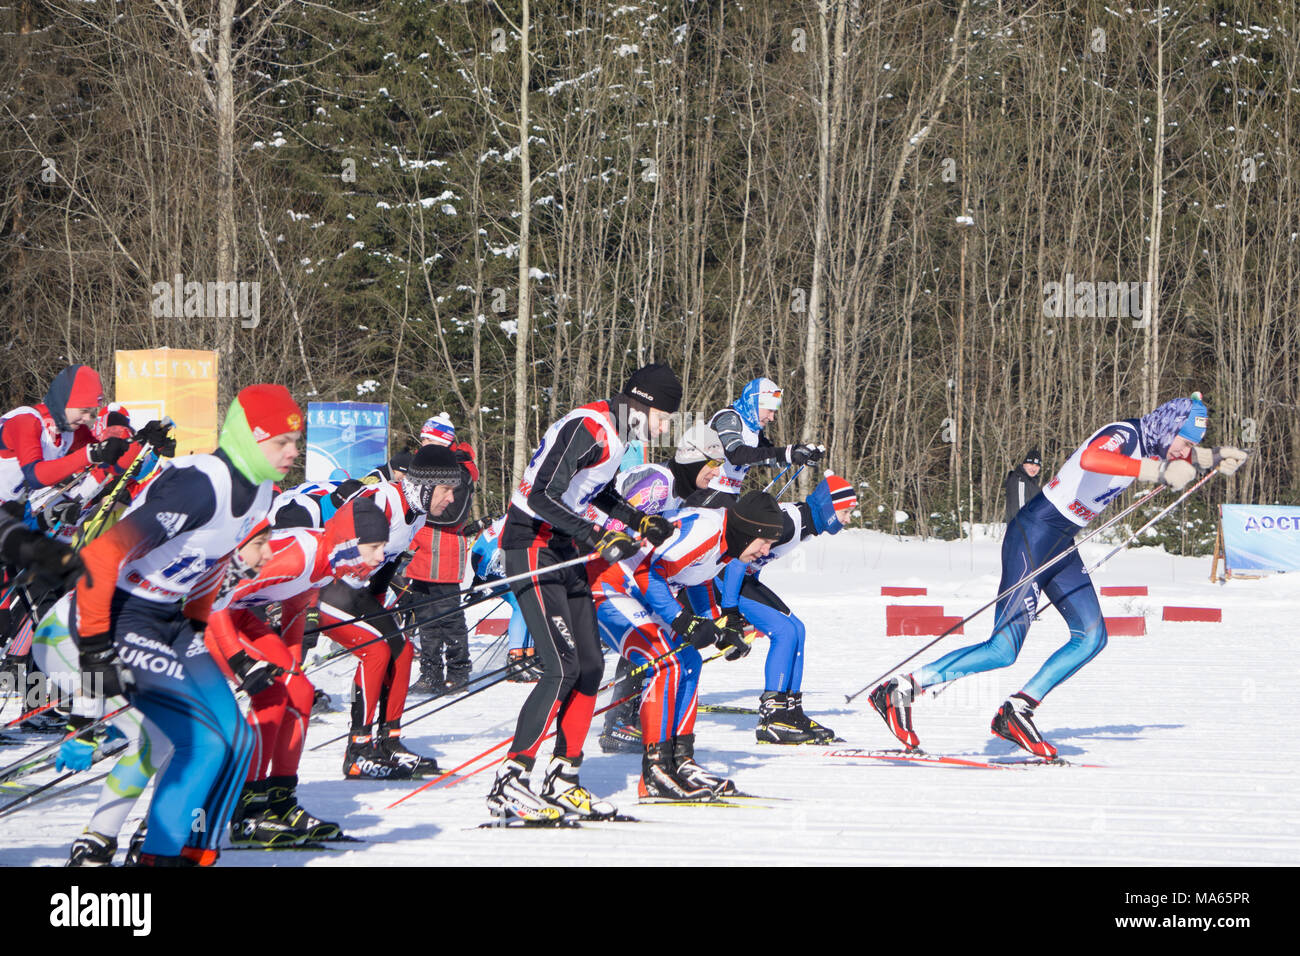 Russia Berezniki March 11, 2018: the first seconds of the start the participants of the traditional mass ski competitions ski track. - Stock Image